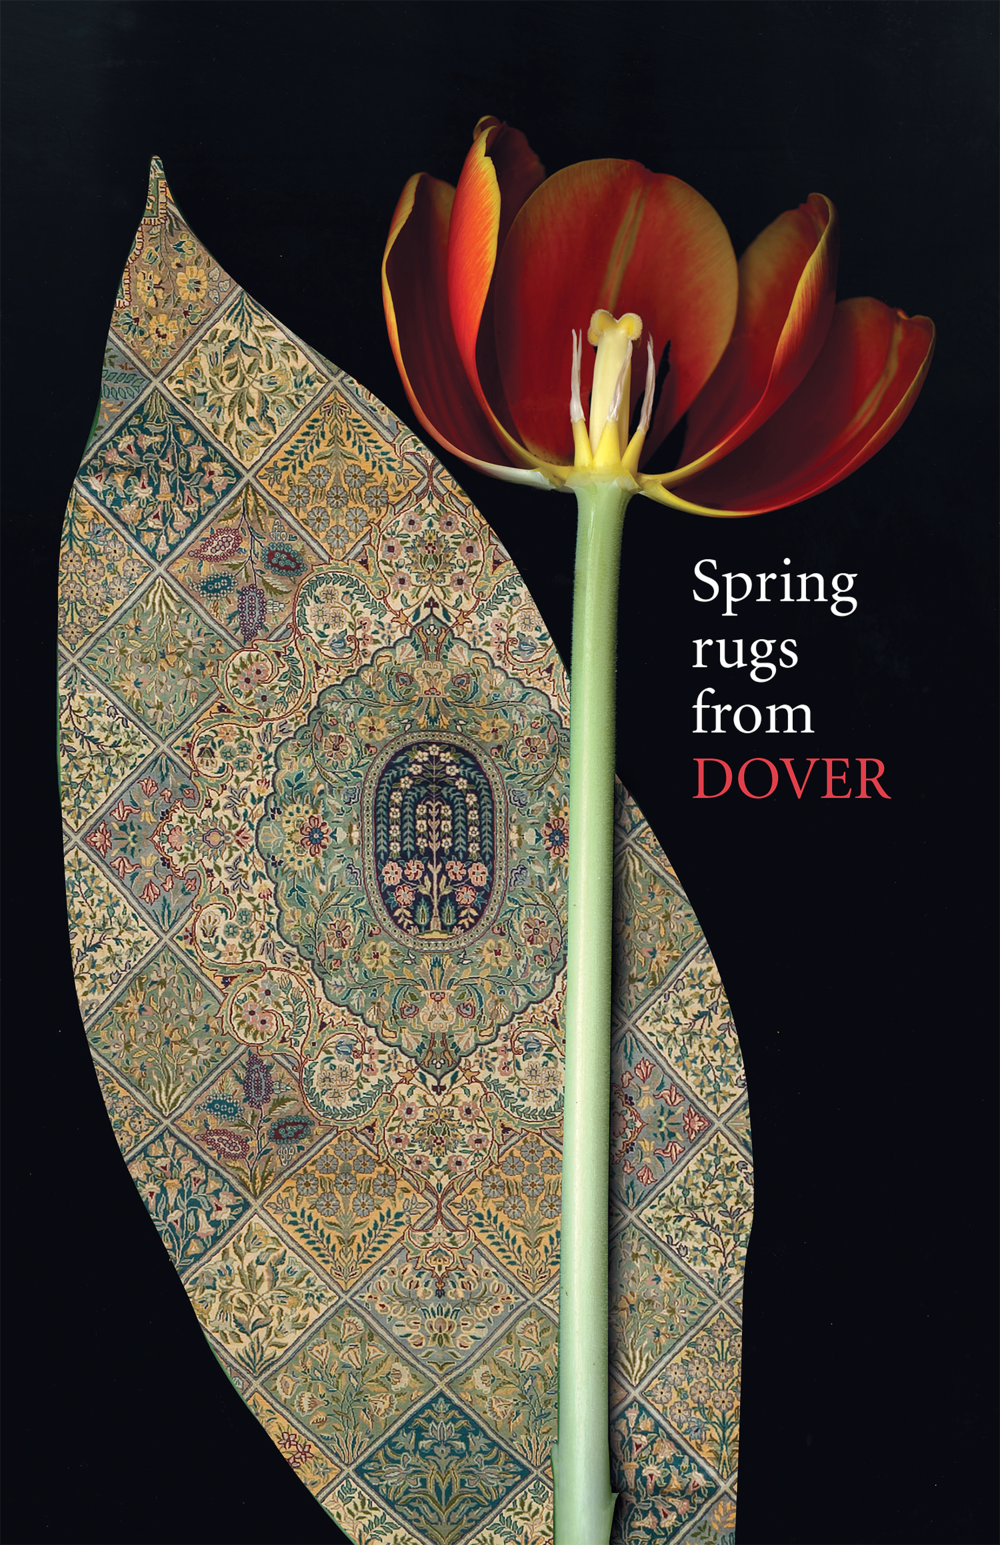 Dover_SpringAd#01 copy.png